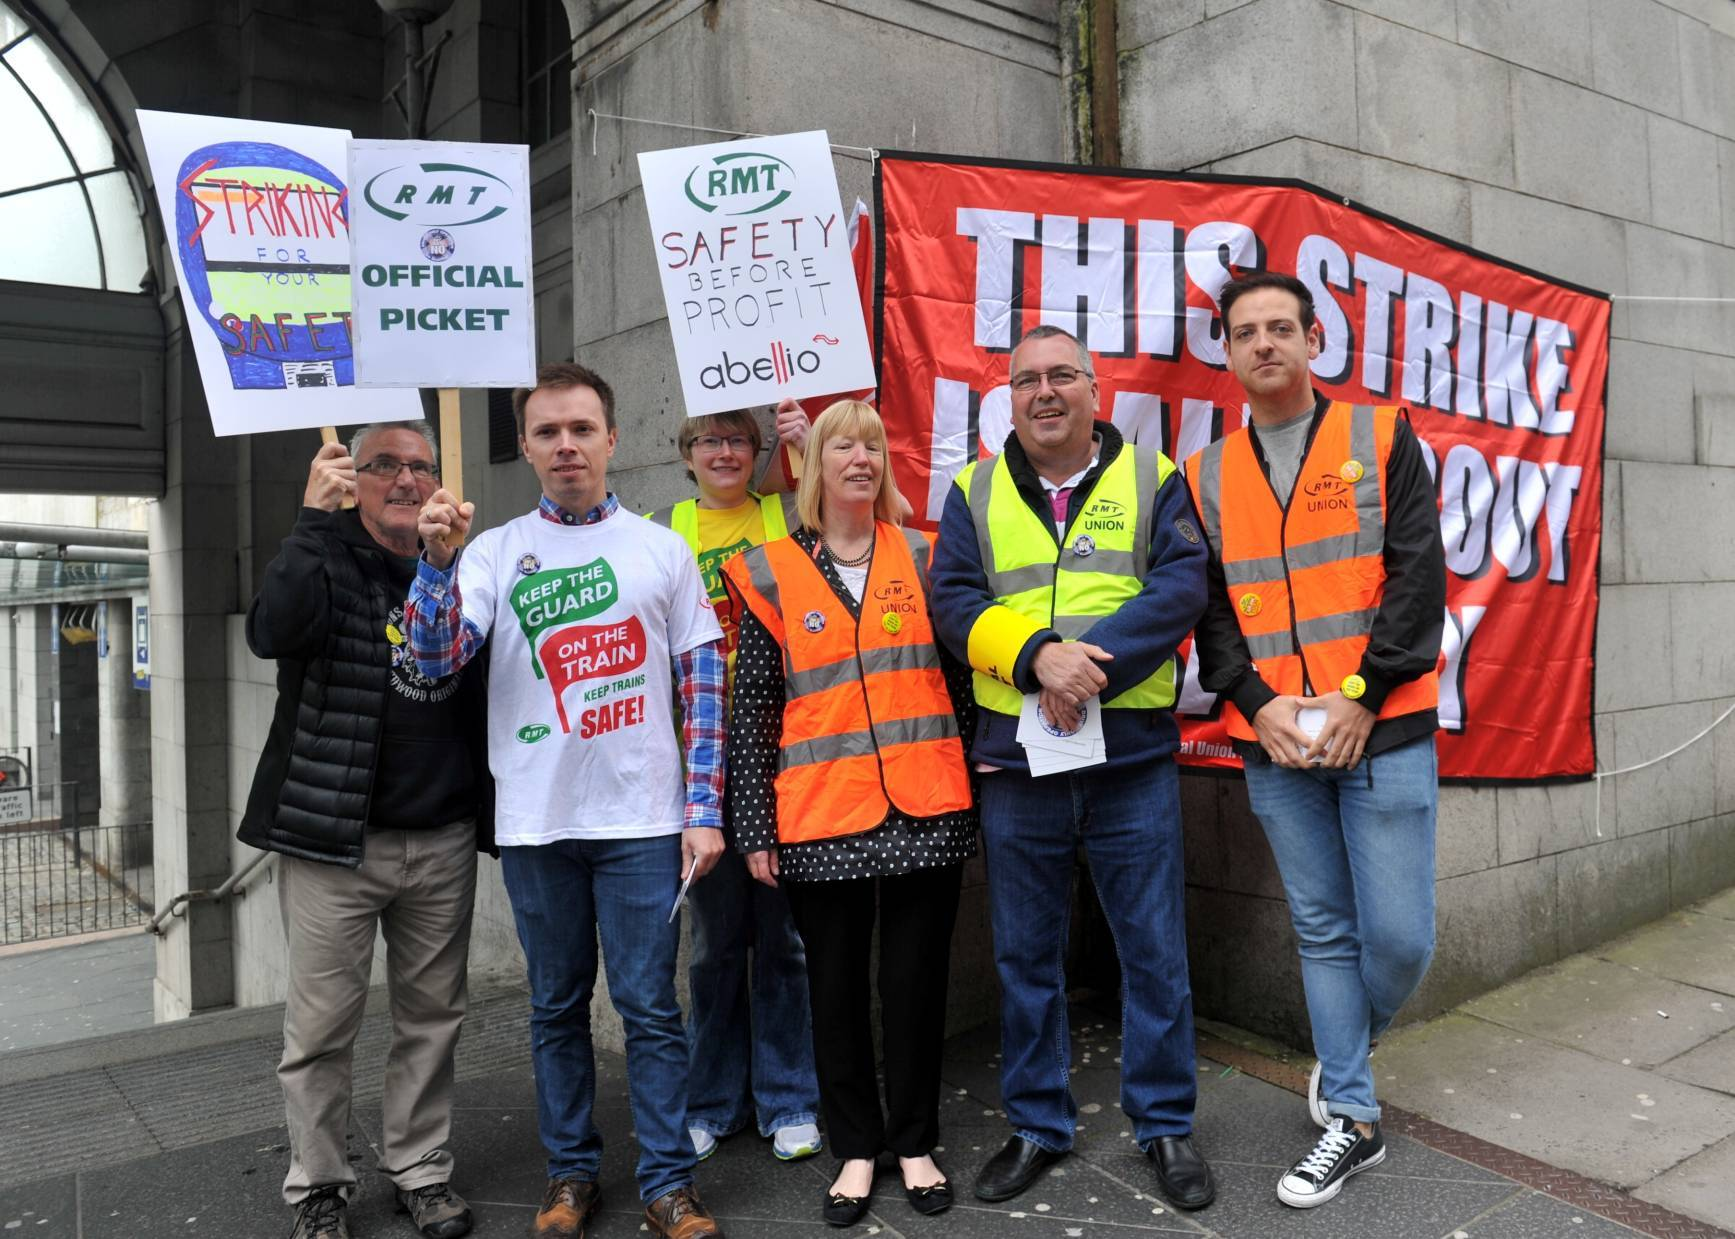 RMT protesters outside Aberdeen's station today.